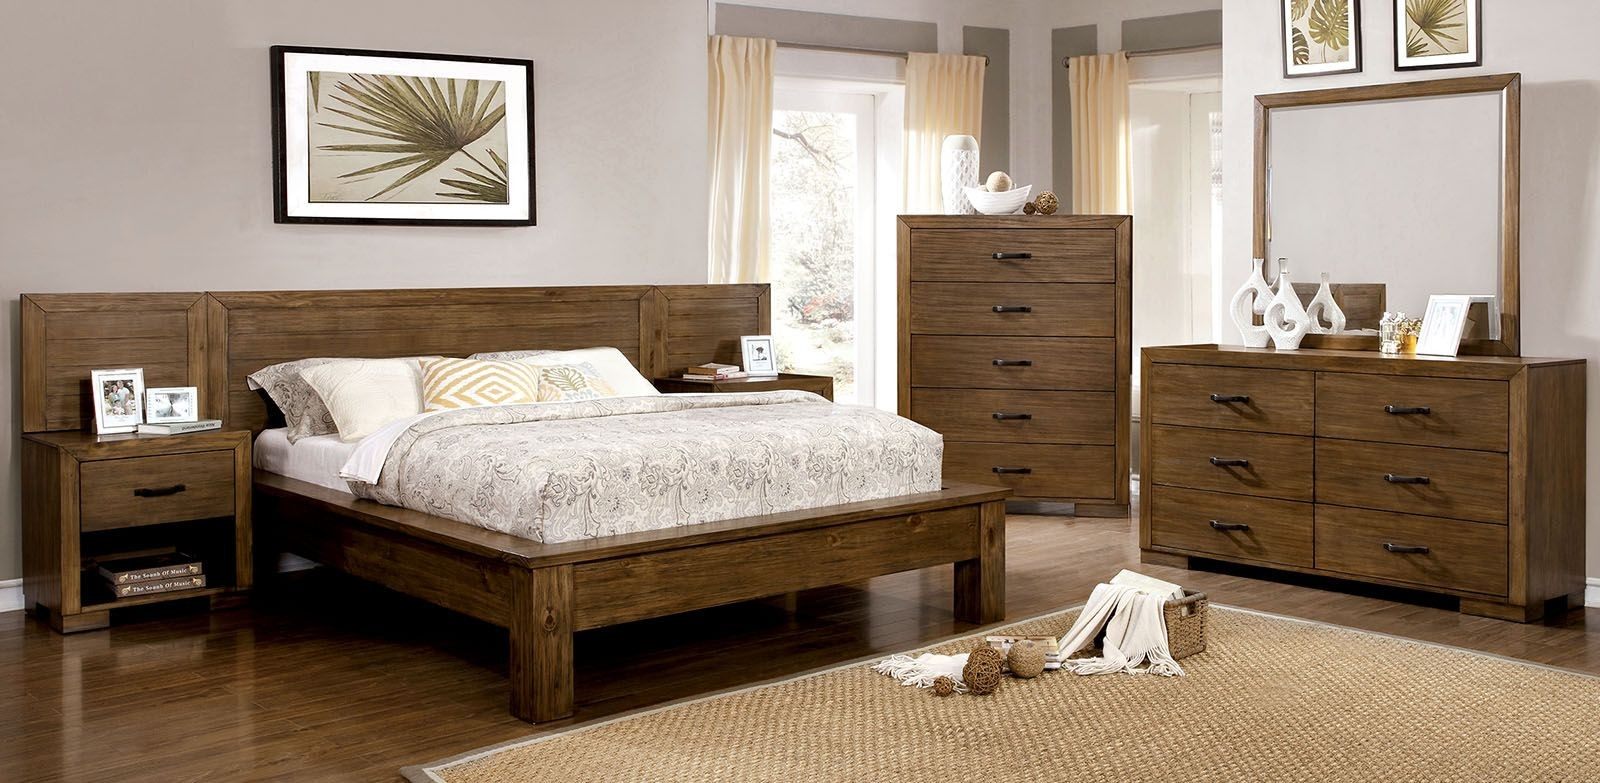 Bairro reclaimed pine wood bedroom set from furniture of for Pine bedroom furniture